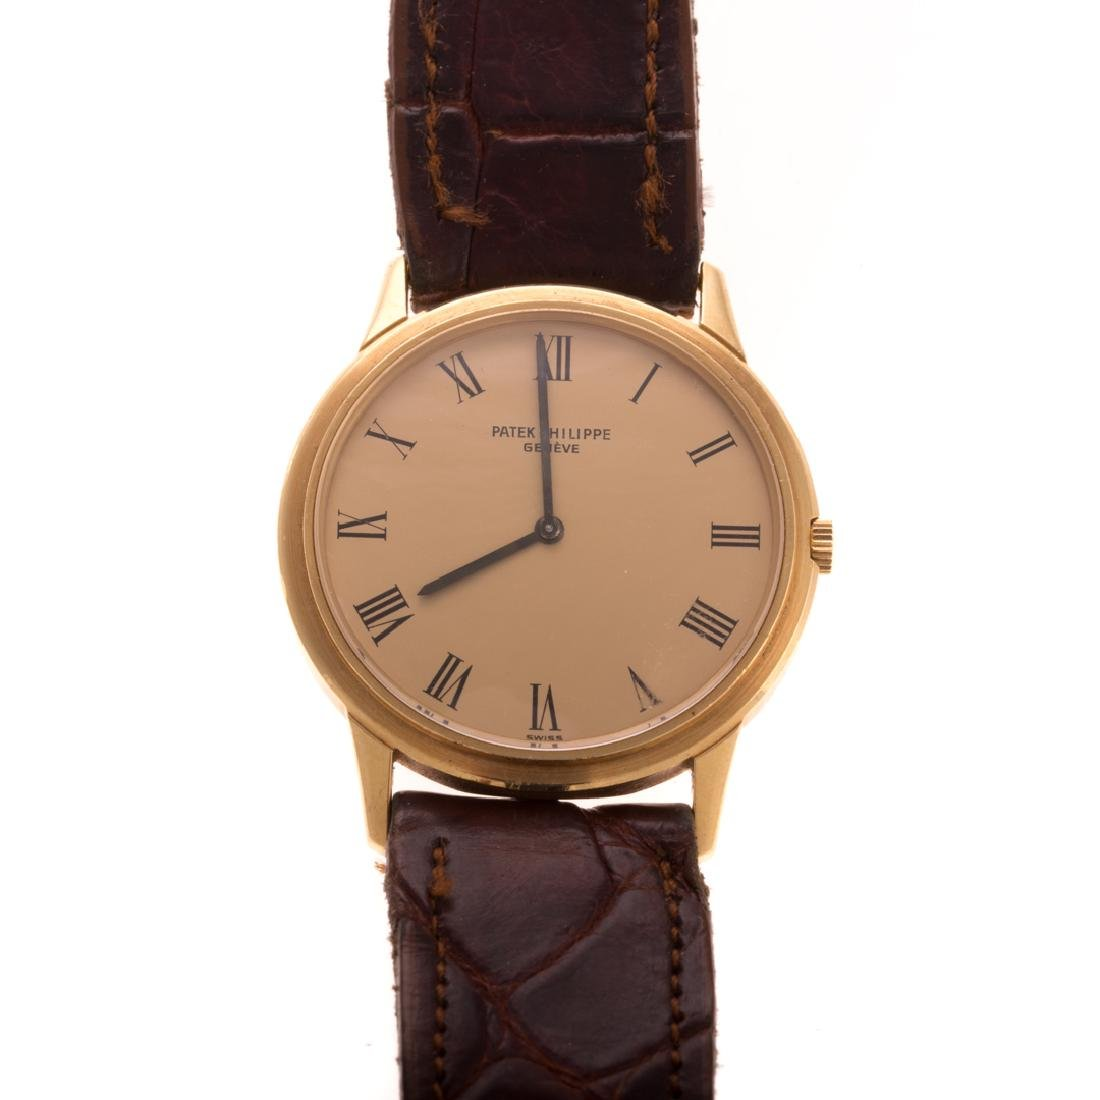 A Gent's 18K Patek Philippe Watch with Box